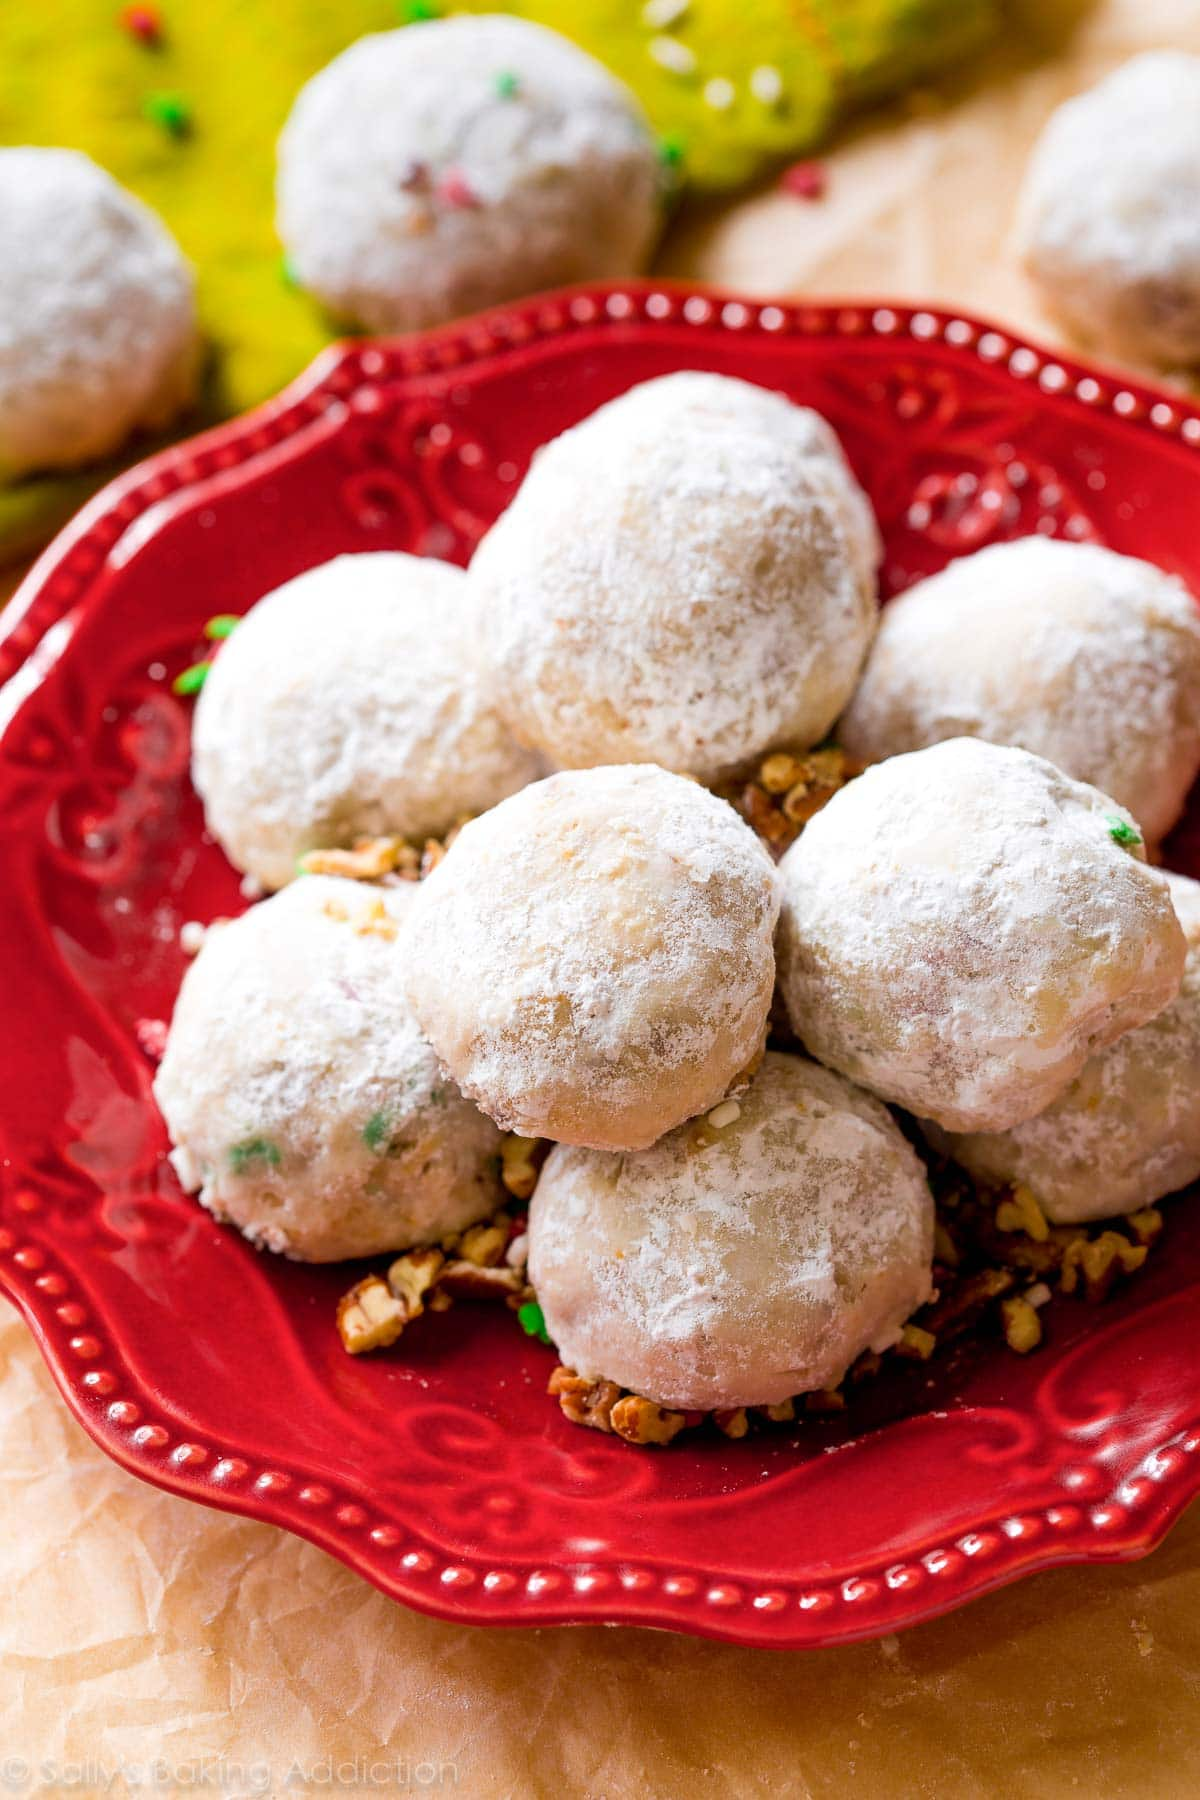 A pile of pecan snowball cookies on a red plate.